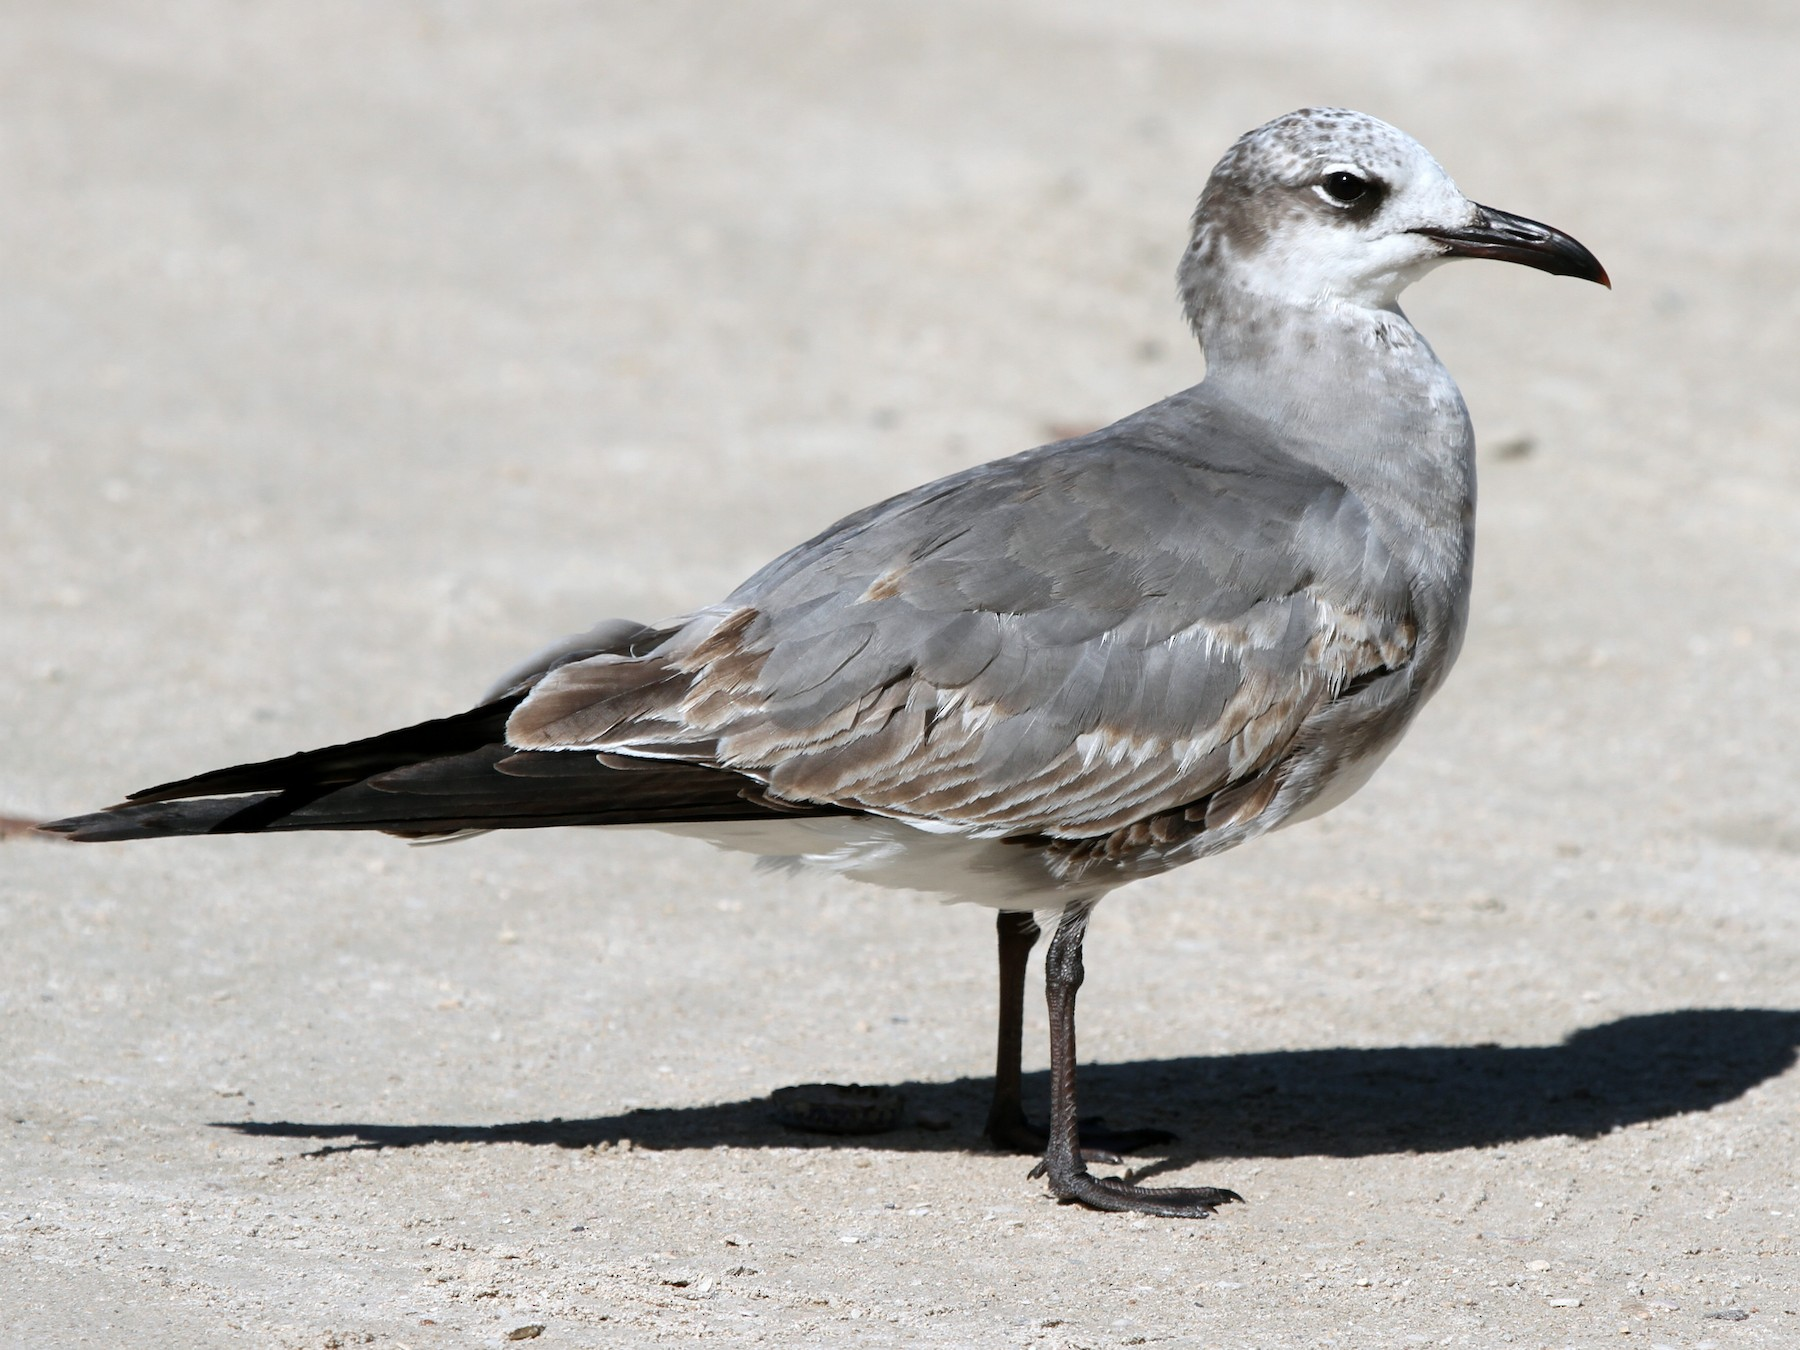 Laughing Gull - James (Jim) Holmes